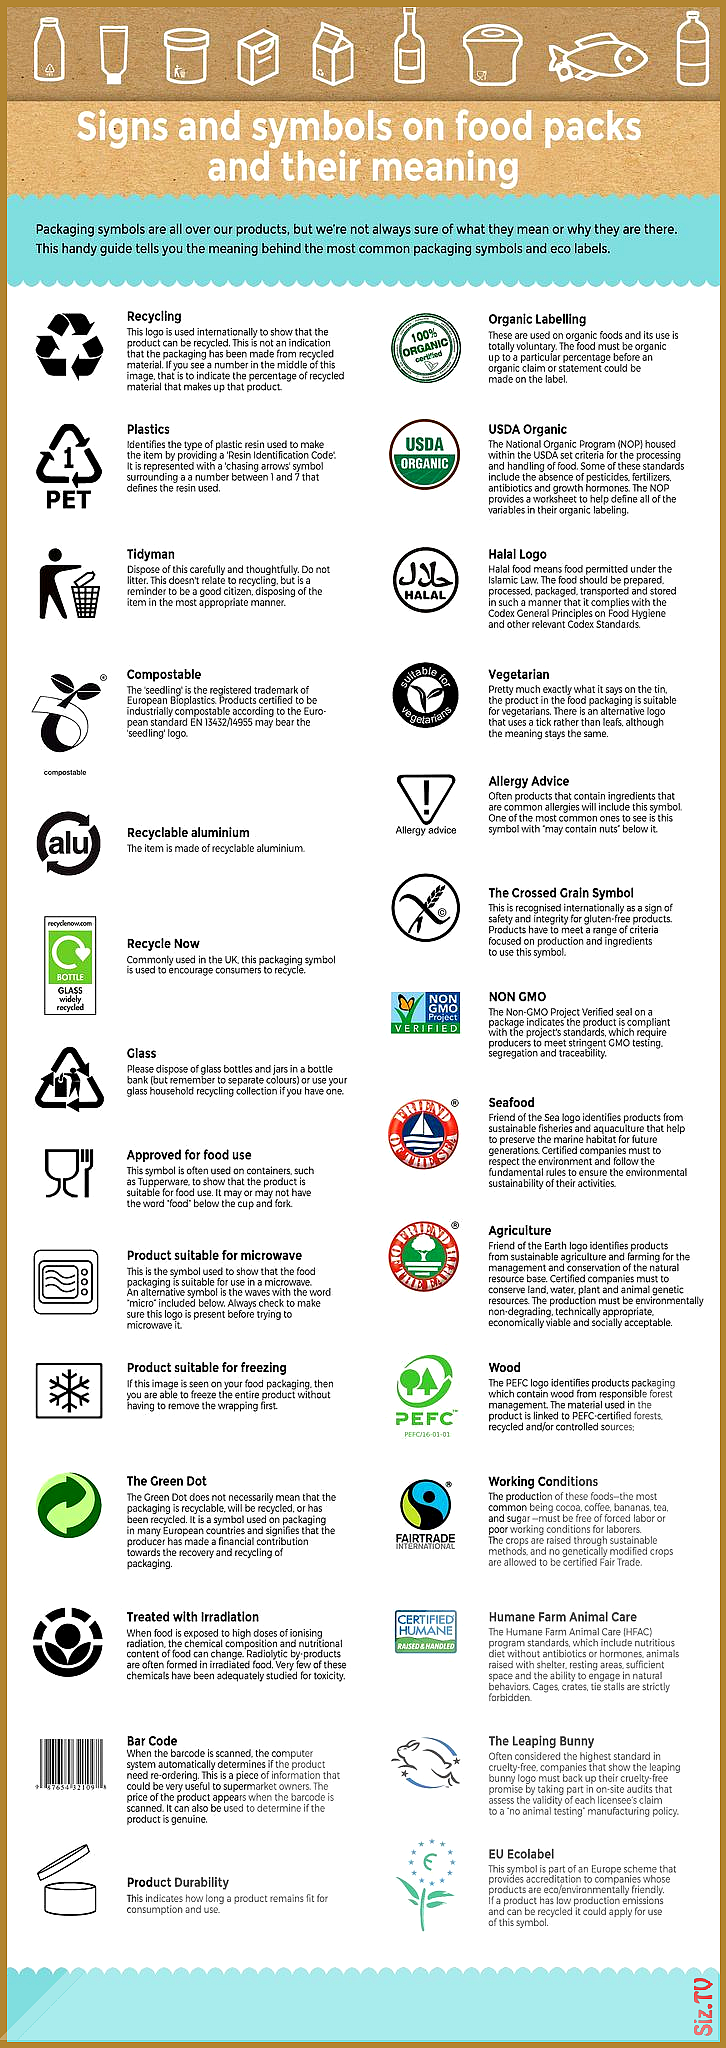 Most Popular Signs Symbols Ecolabels On Food Packaging And Their Meaning Most Popular Signs Symbols Ecolabe In 2020 Food Packaging Recycling Information Organic Labels